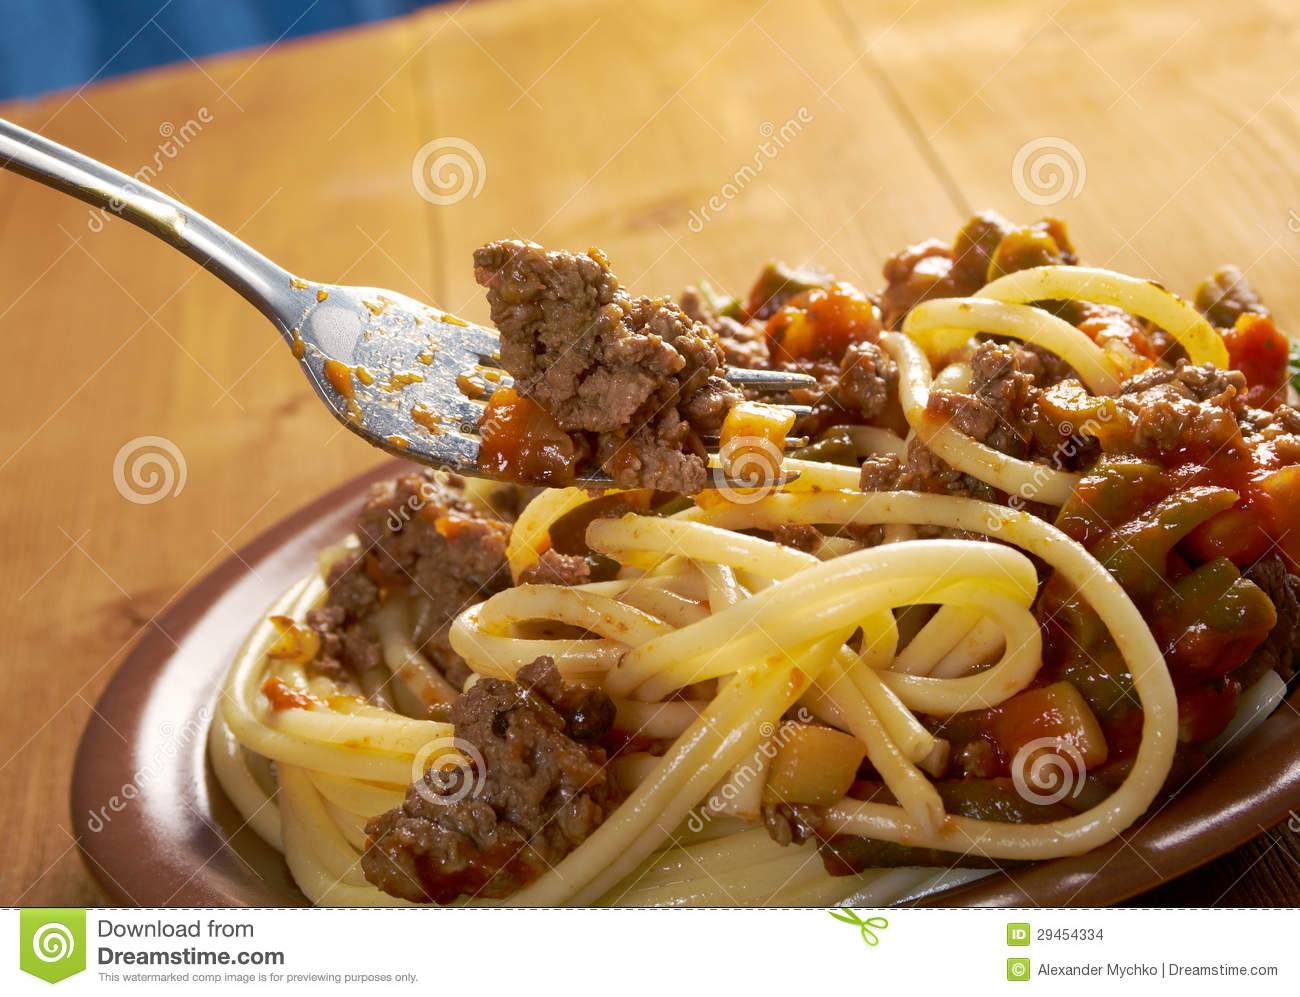 Pasta With Beef Tomato Sauce Stock Images - Image: 29454334